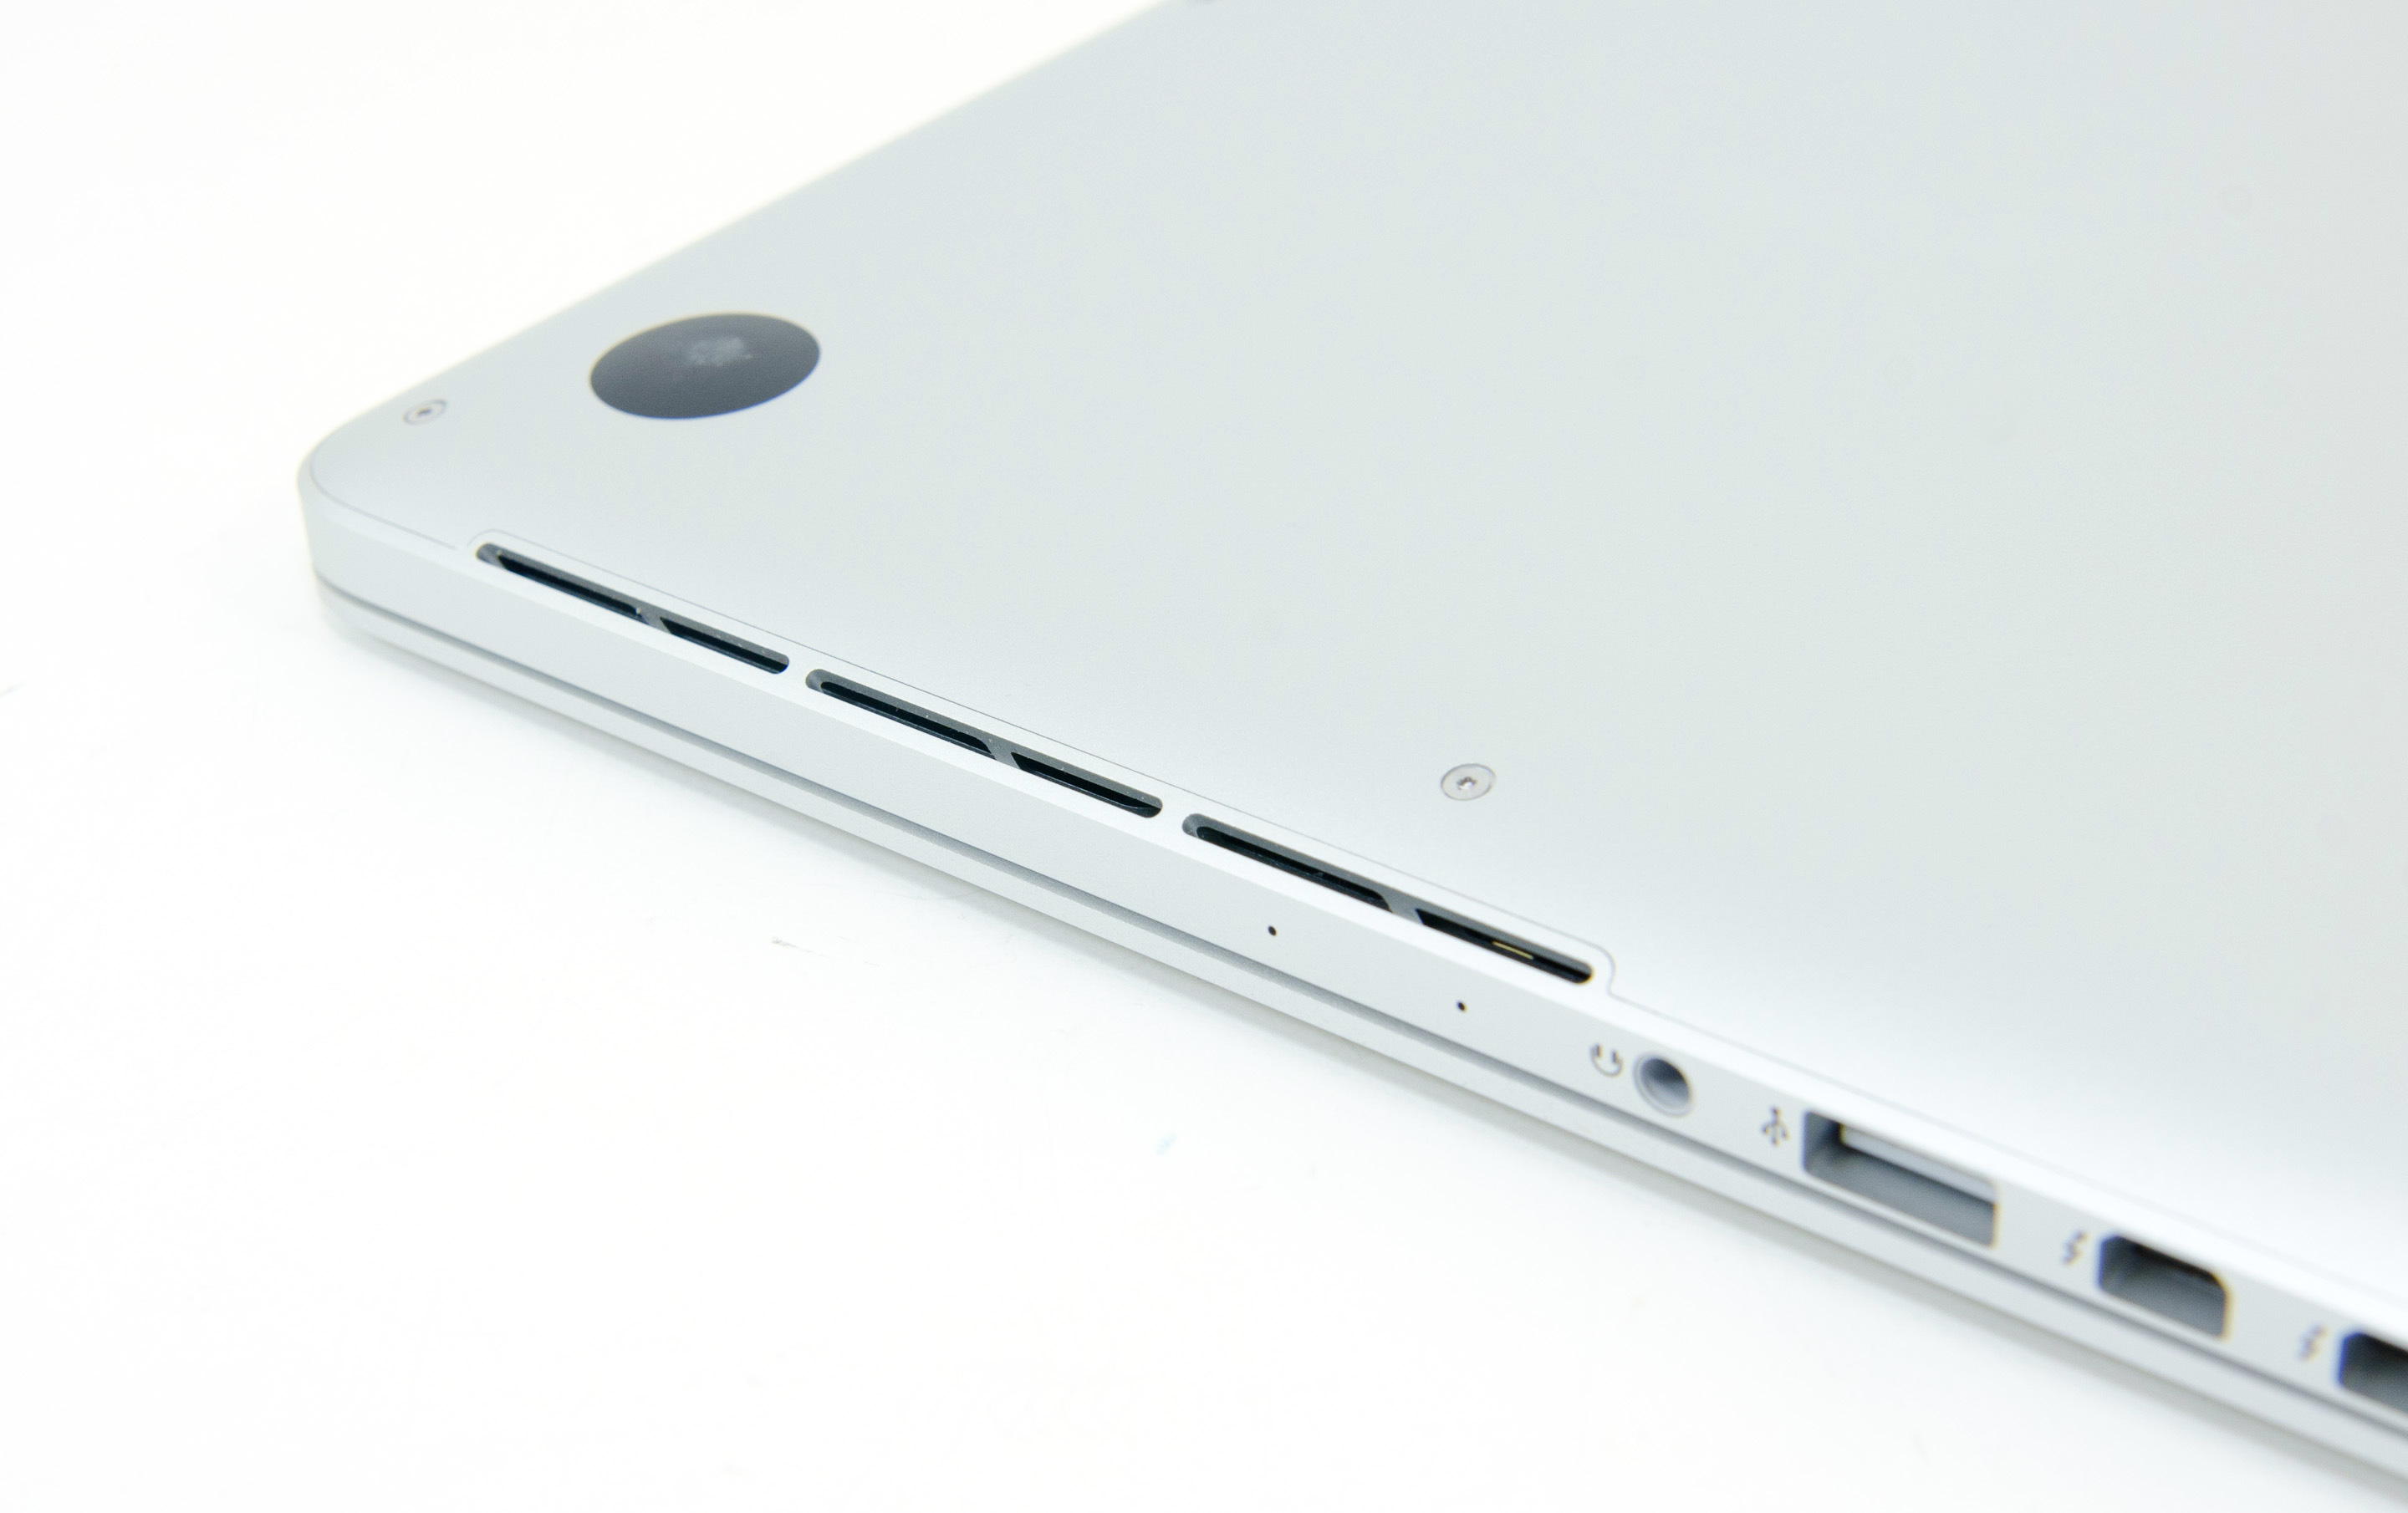 Performance Exhaust Systems >> Thermals & Acoustics - 13-inch Retina MacBook Pro Review (Late 2012)